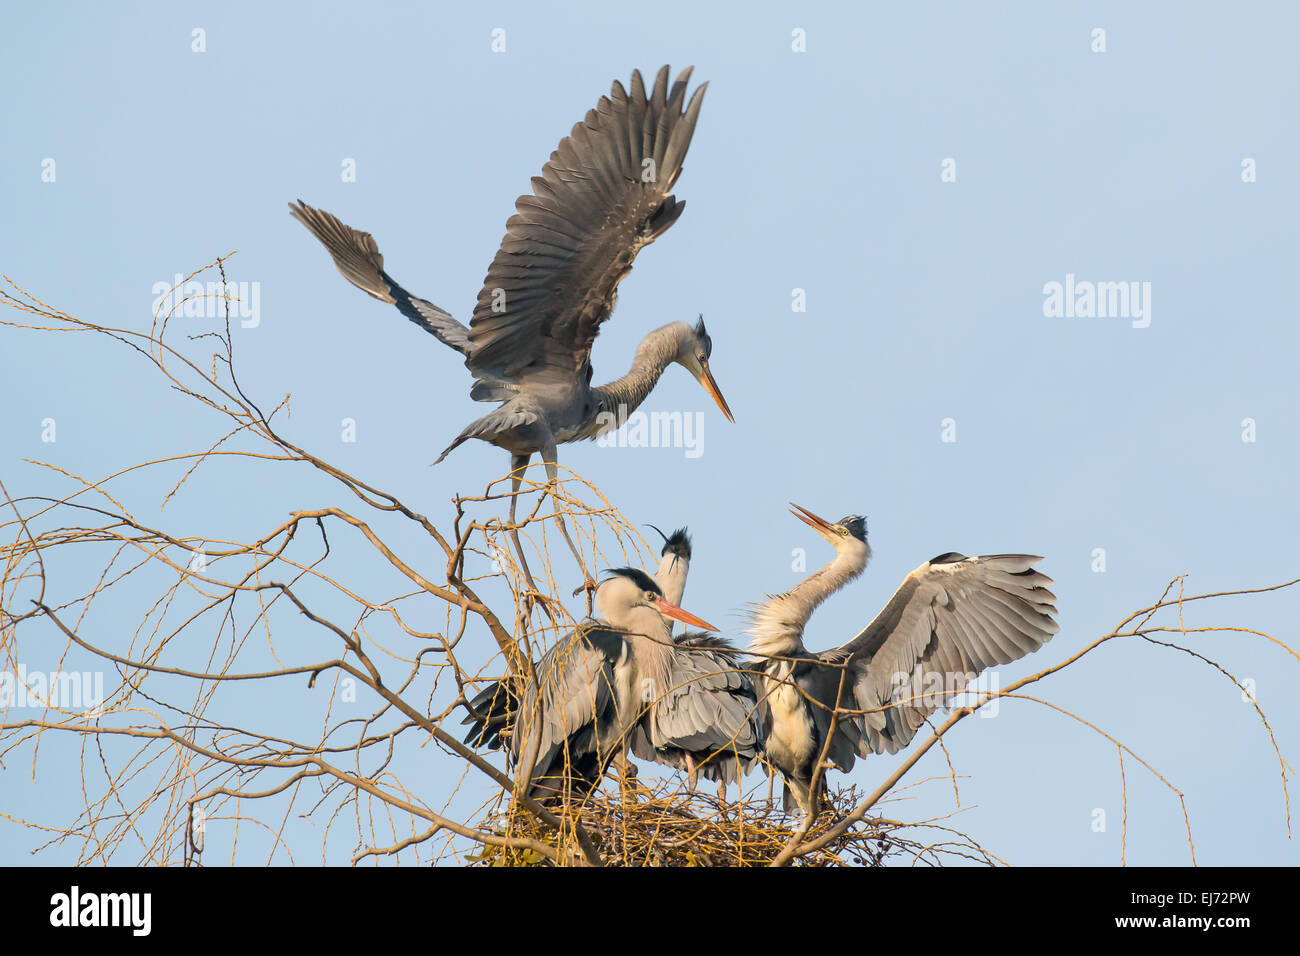 Two juvenile Grey Herons (Ardea cinerea) argue on the nest, Hesse, Germany - Stock Image